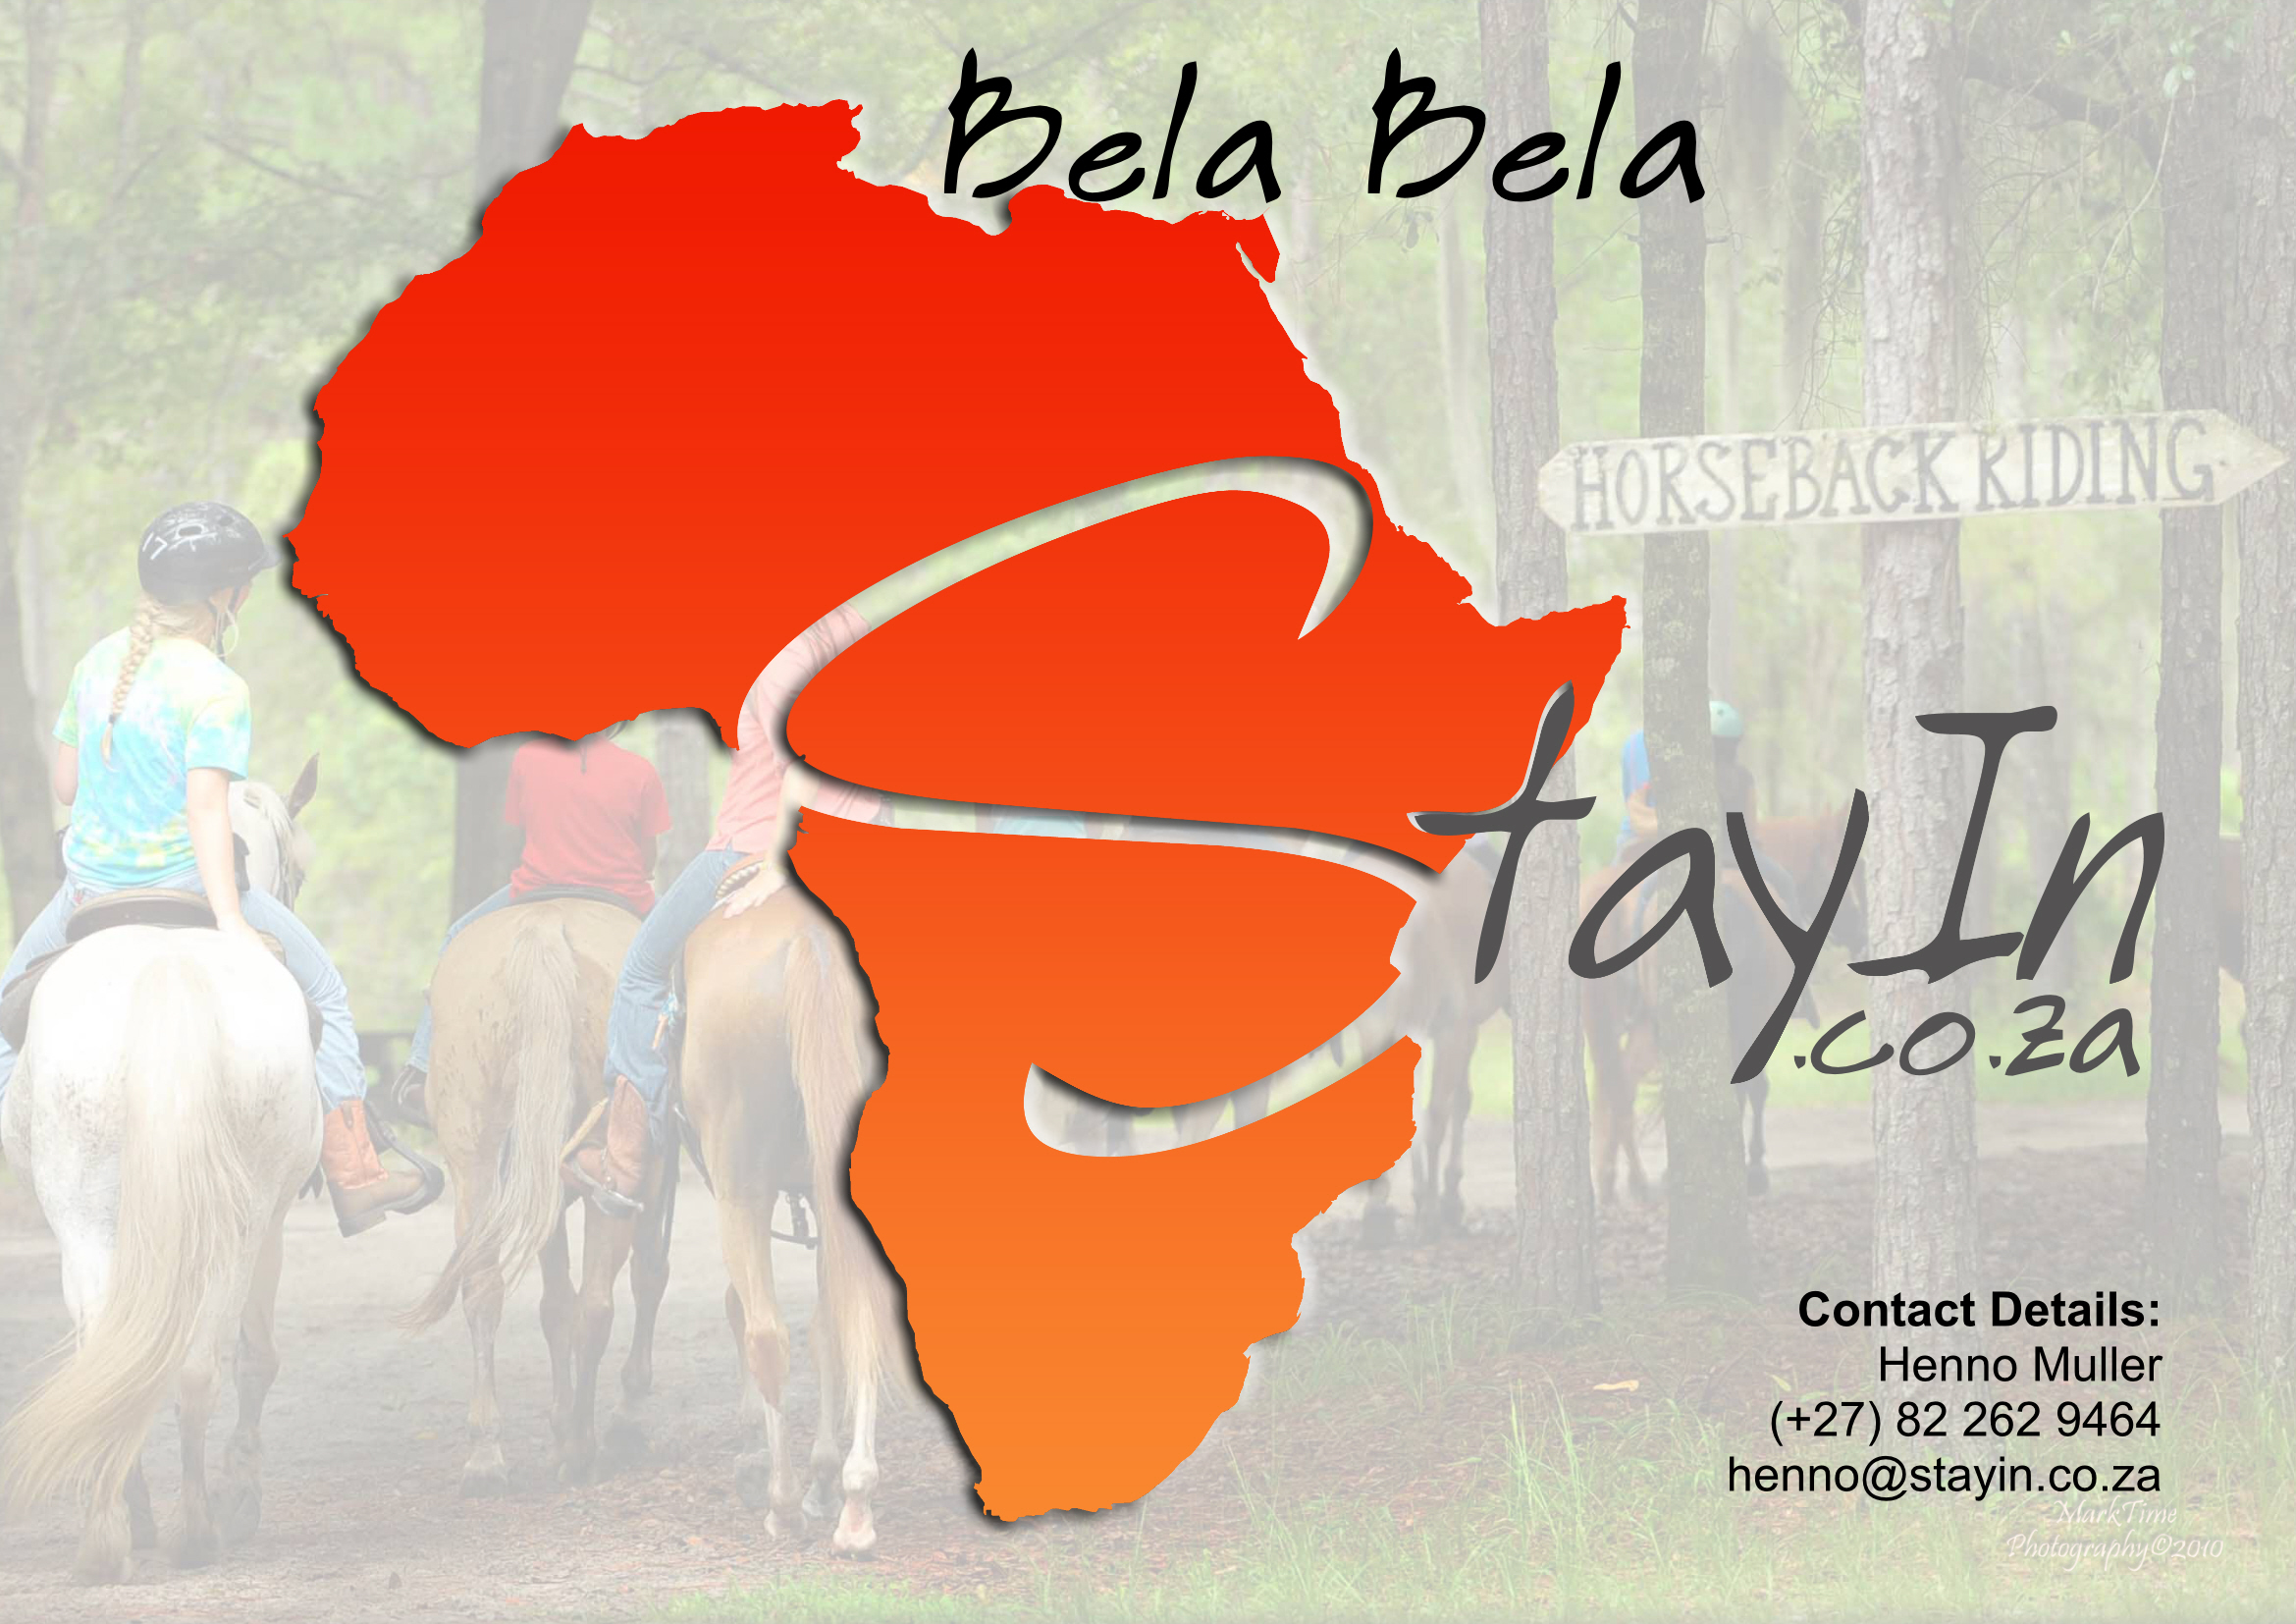 Peri Peri Creative-Stay-in flyer template-Bela Bela horsebackriding.1